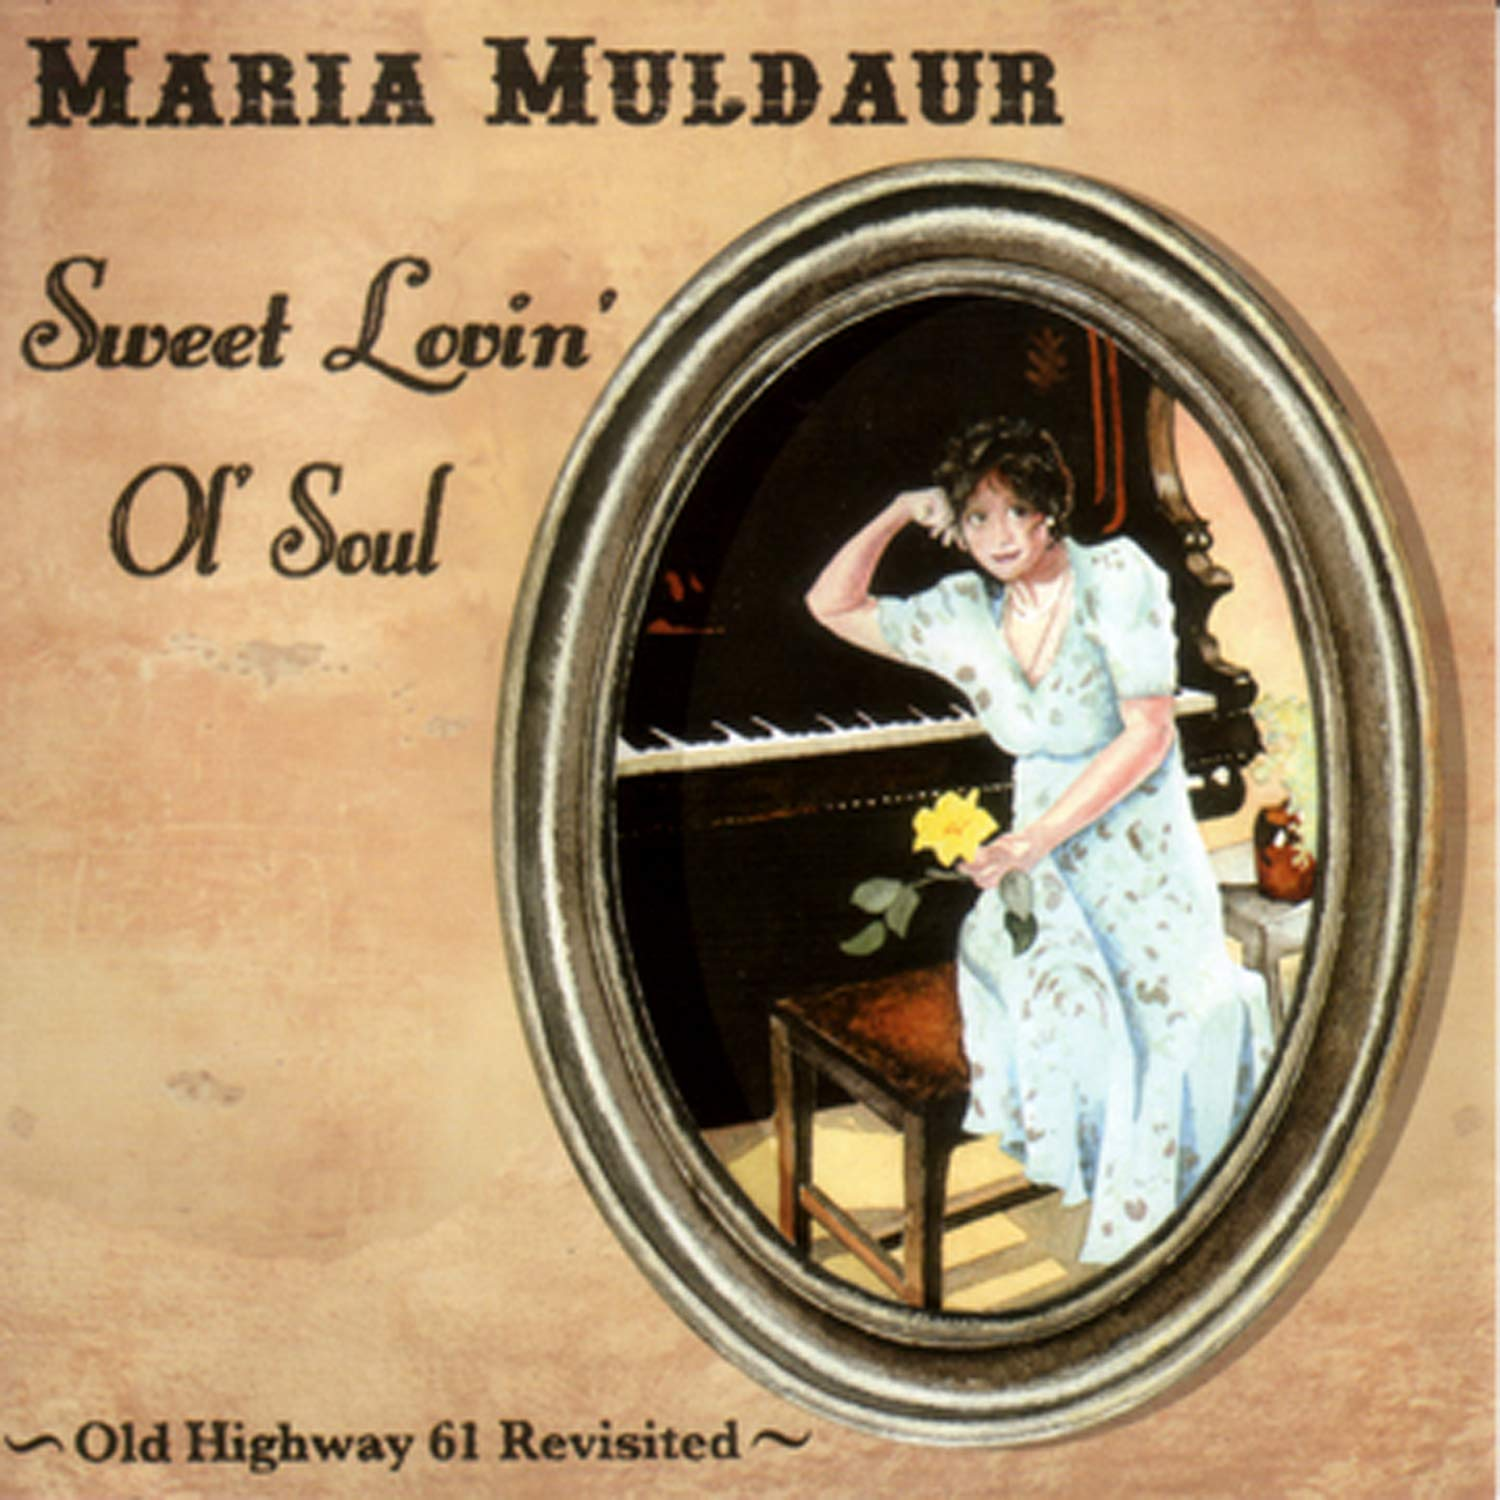 Sweet Lovin' Ol' Soul: 61 Highway Inventory cleanup selling sale Old Finally popular brand Revisited